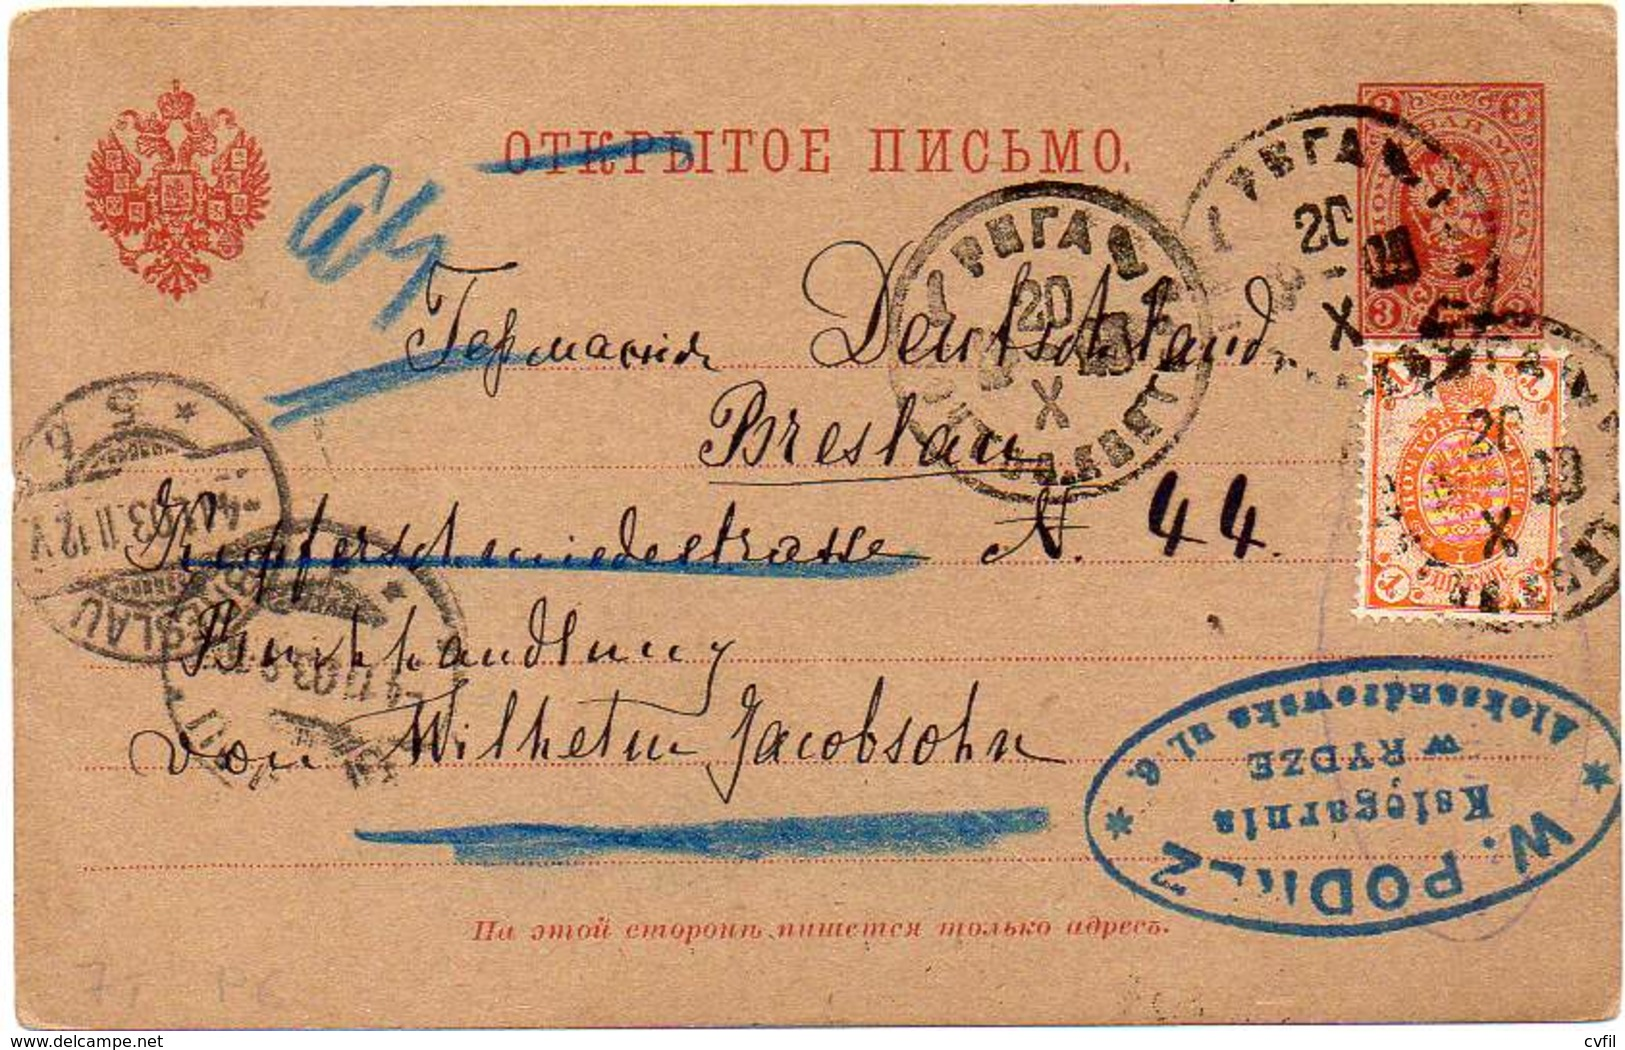 RUSSIA 1903 - Entire Postal Card Of 3 Kopecs With Additional Postage, From Riga To Breslau, Germany - 1857-1916 Empire